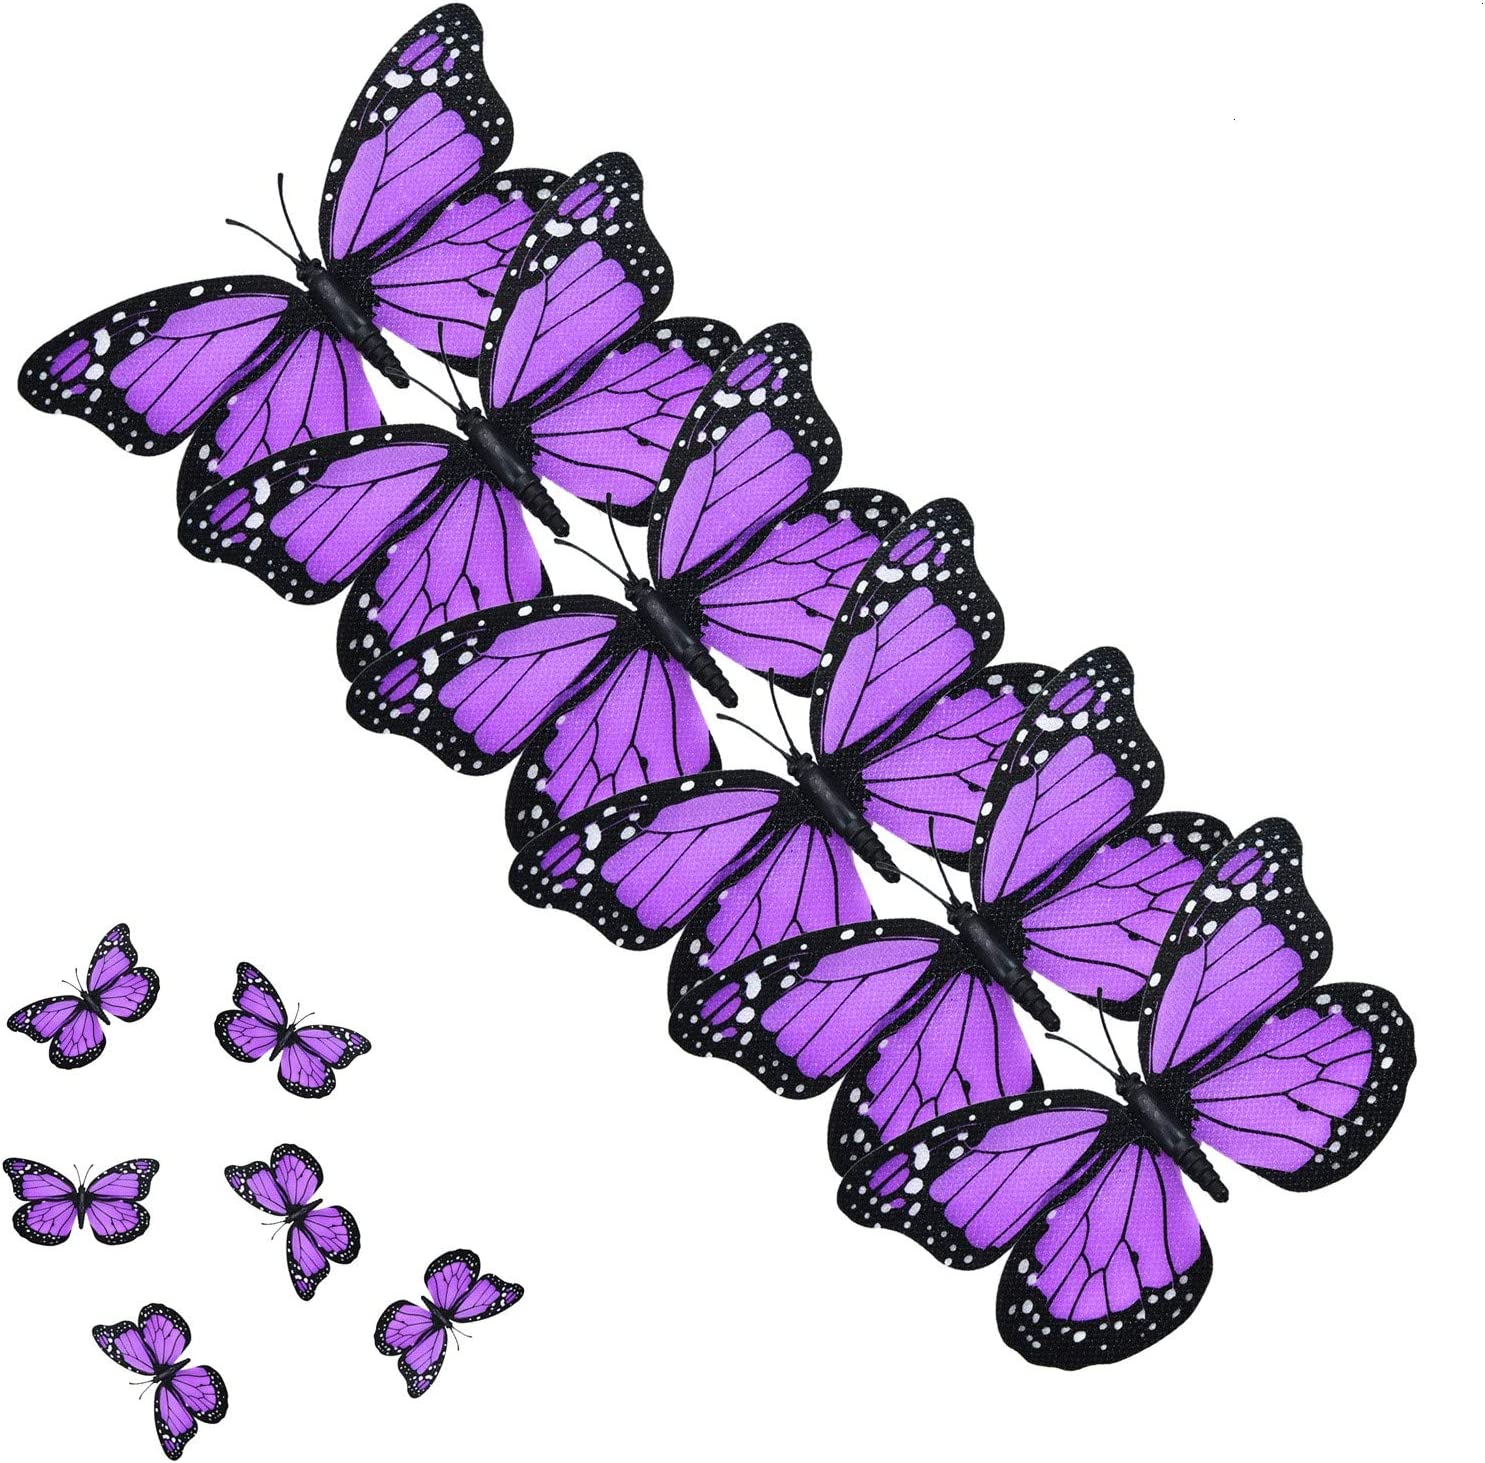 AQUEENLY Monarch Butterfly Decorations, 4.72'' Purple Premium Artificial Monarch Butterfly to Decorate for Craft, Home, Wall, Wedding, Party (12 Pcs)